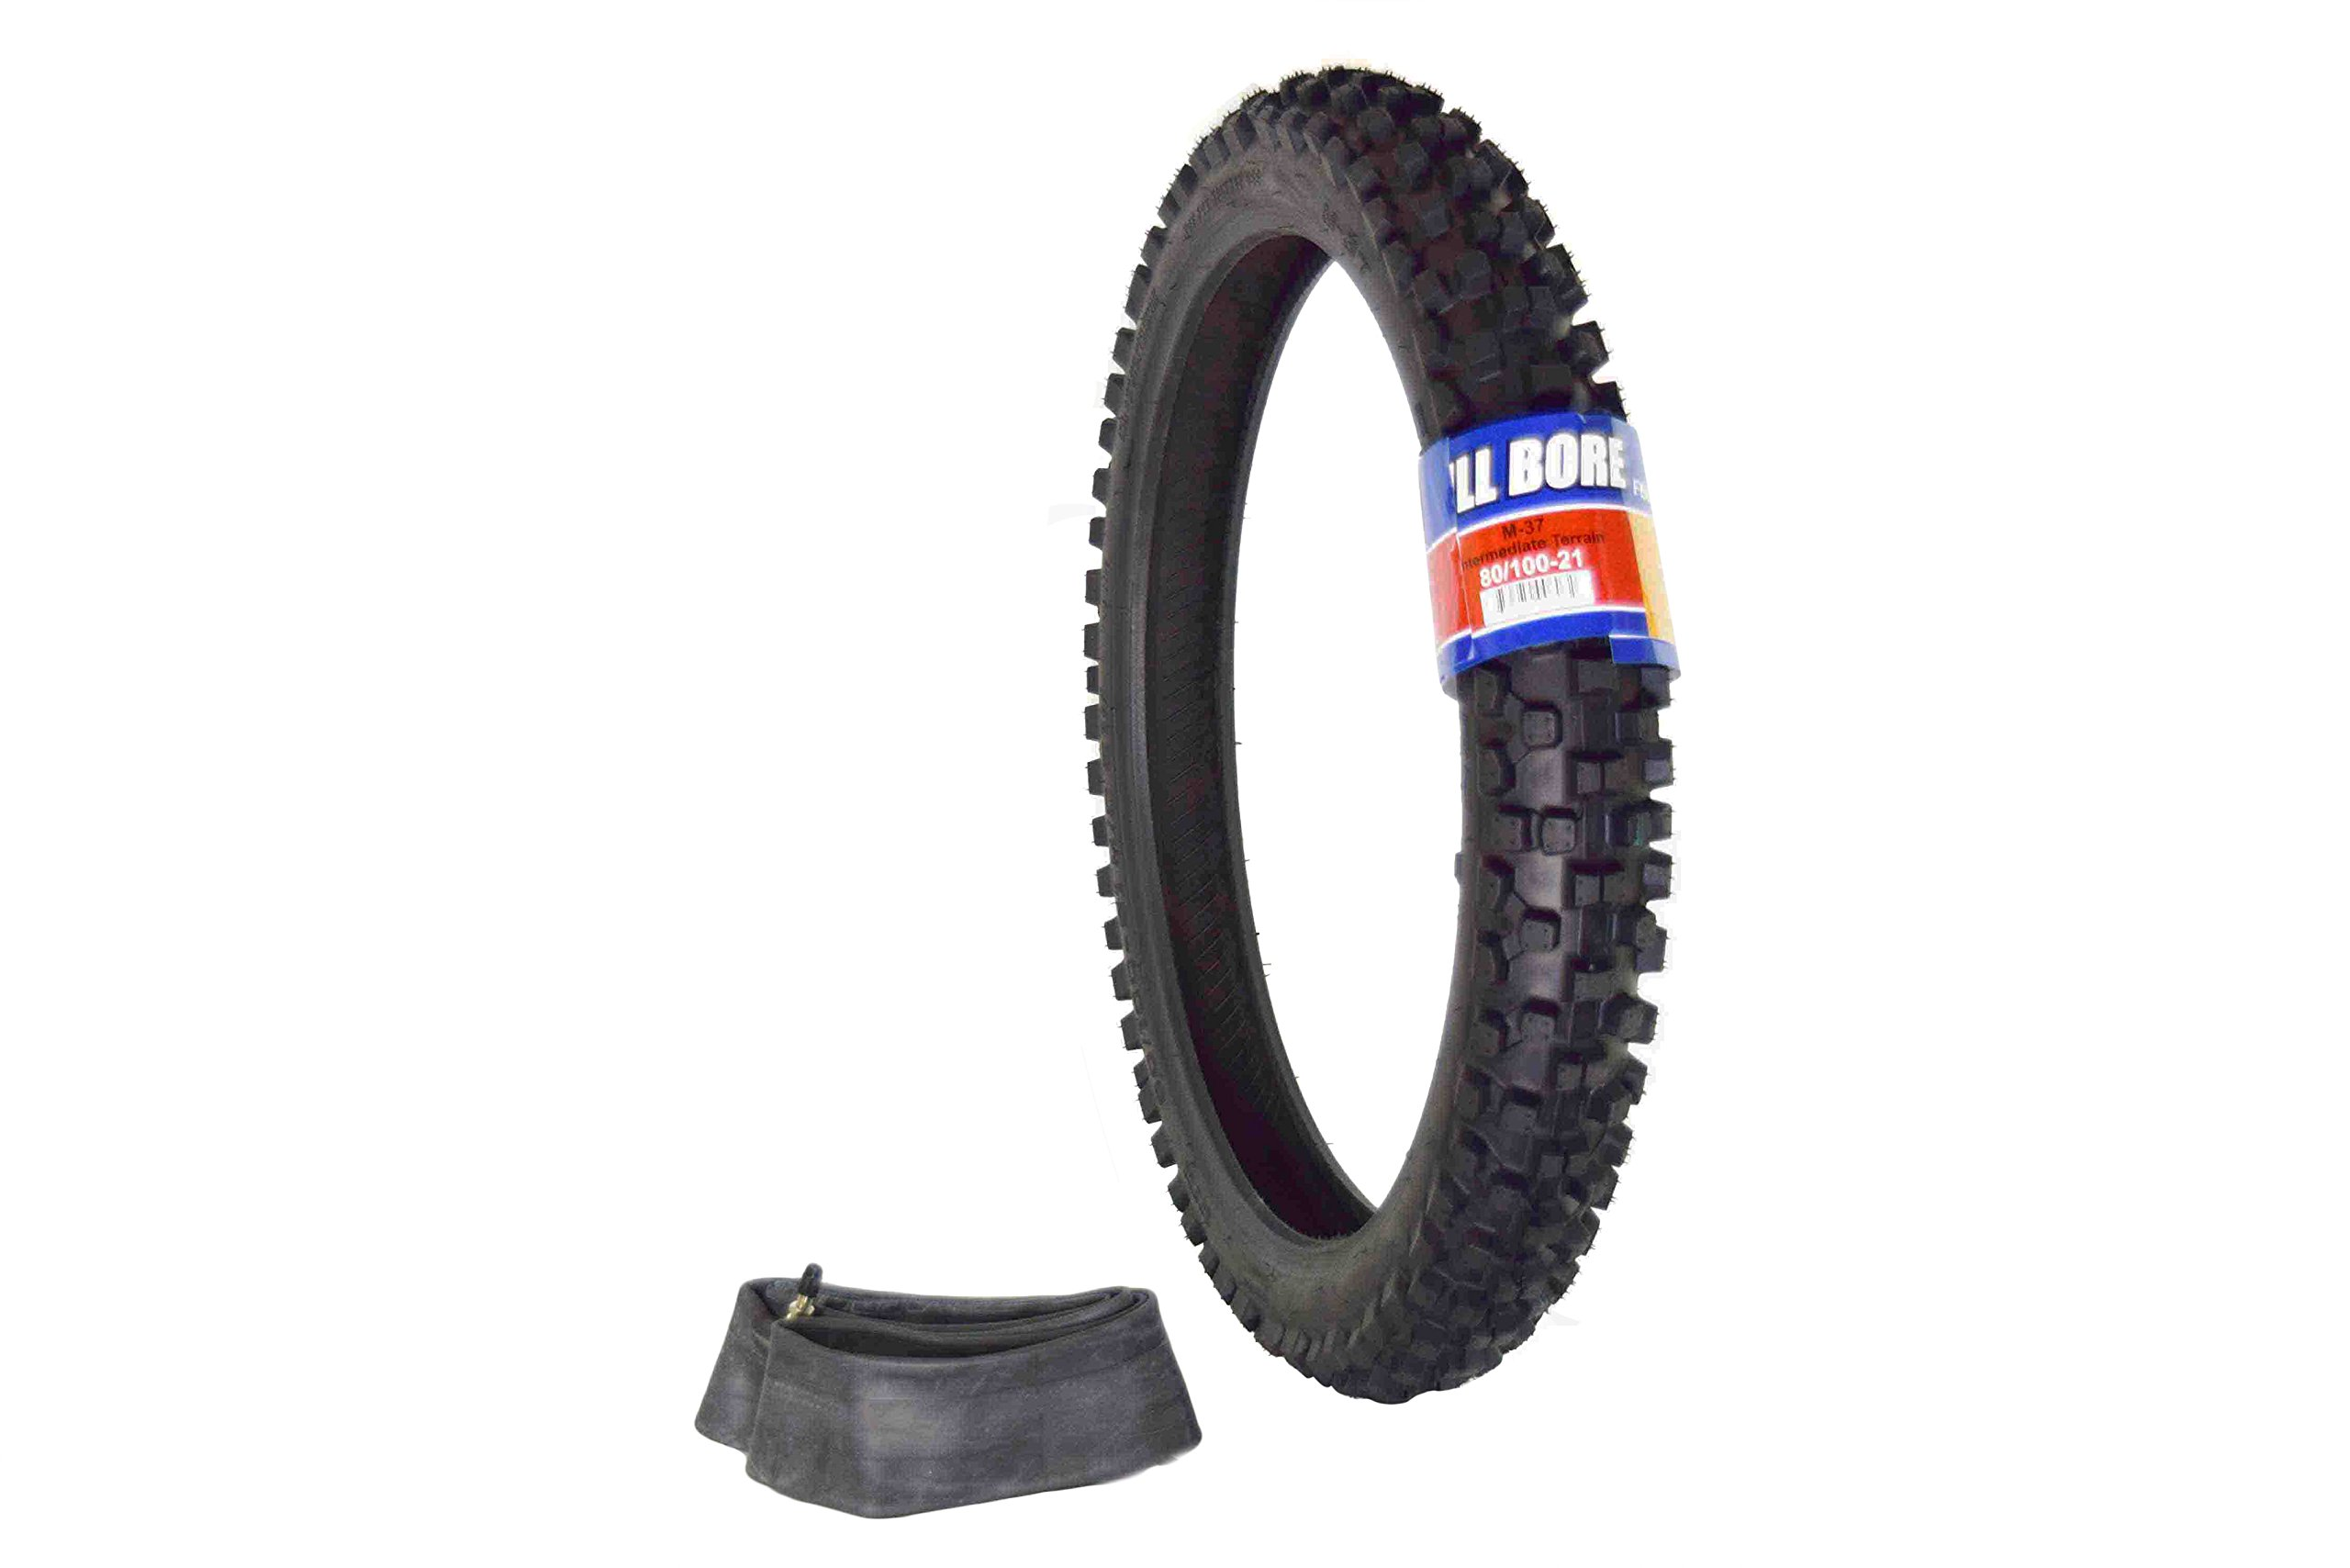 Full Bore 80/100-21 M37 Intermediate Terrain Dirt Bike Tire with TR-4 Inner Tube